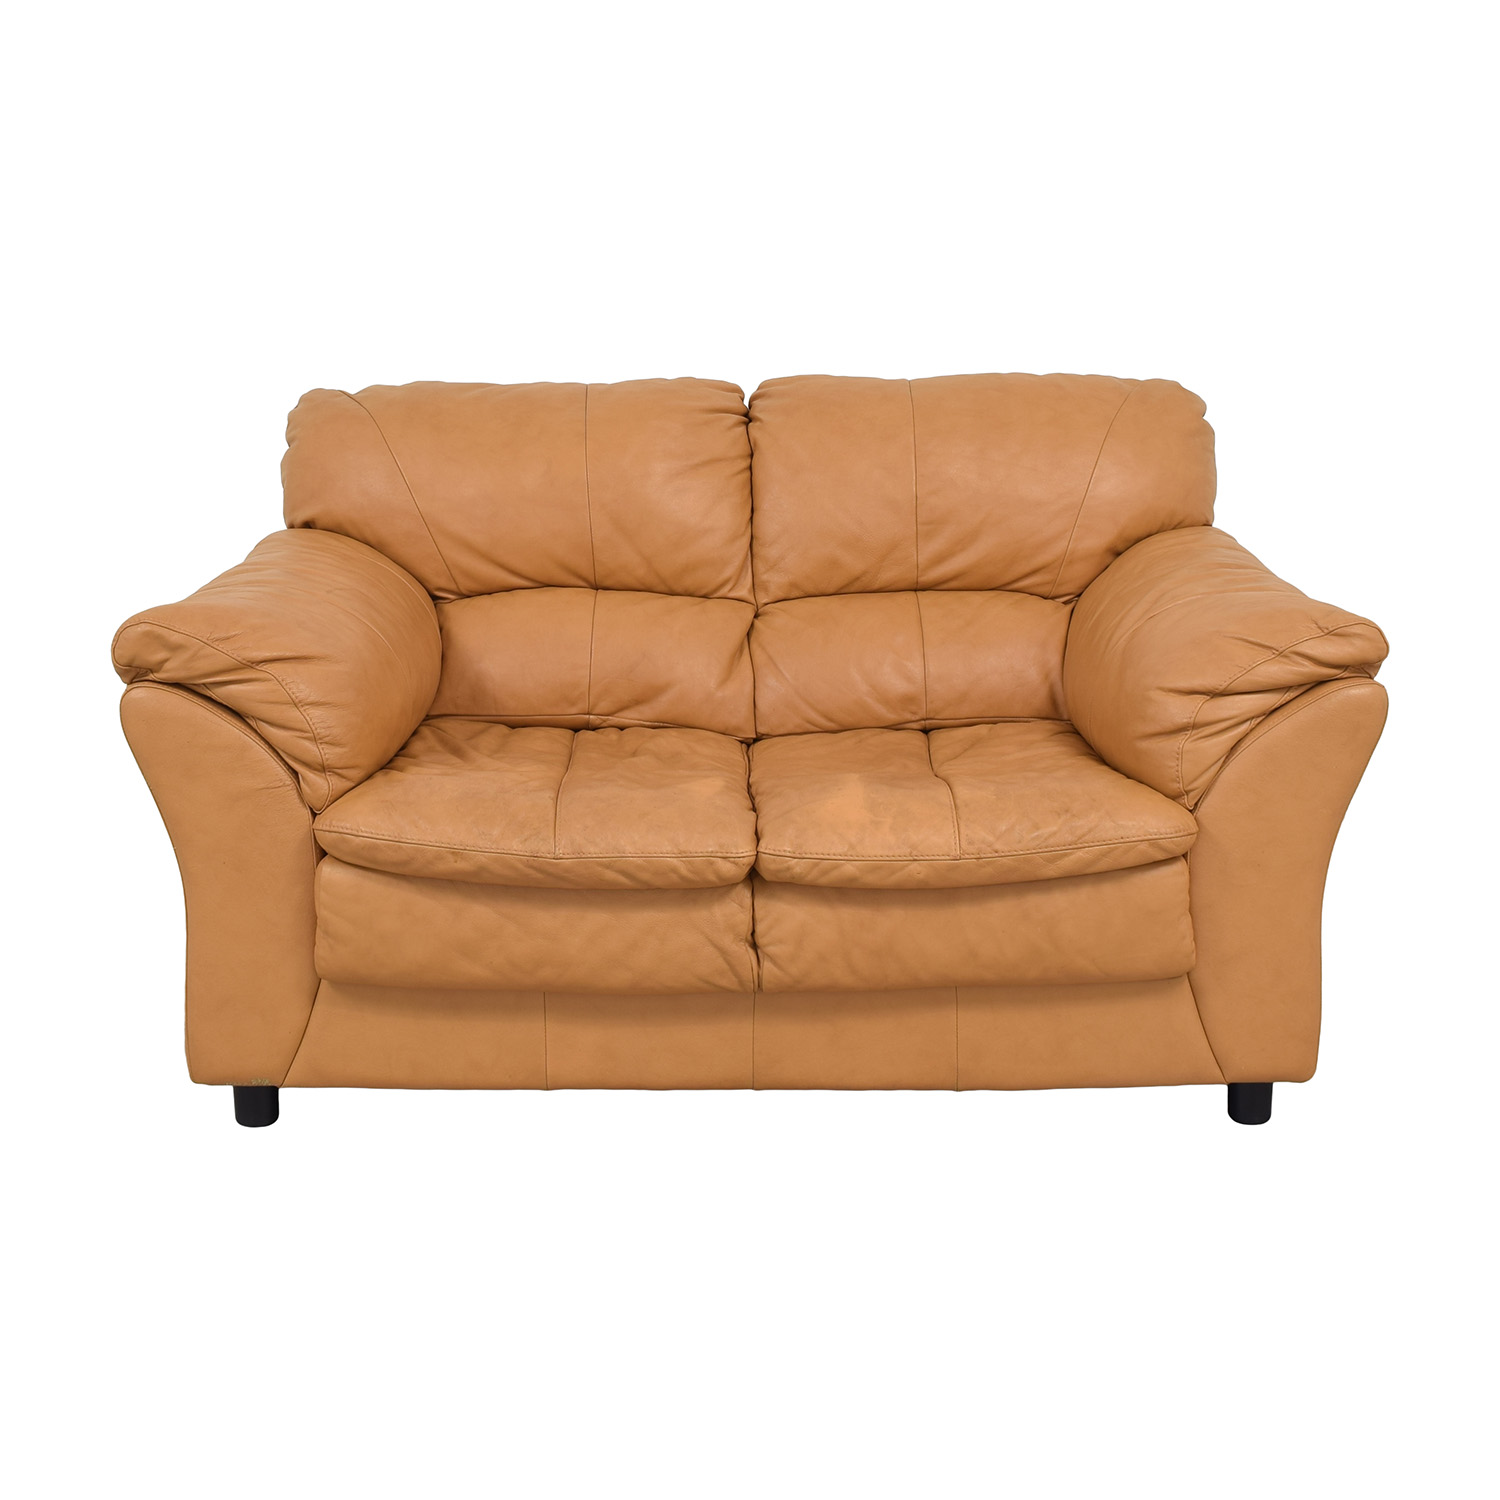 Soft Line SpA Soft Line SpA Padded Arm Loveseat Sofas